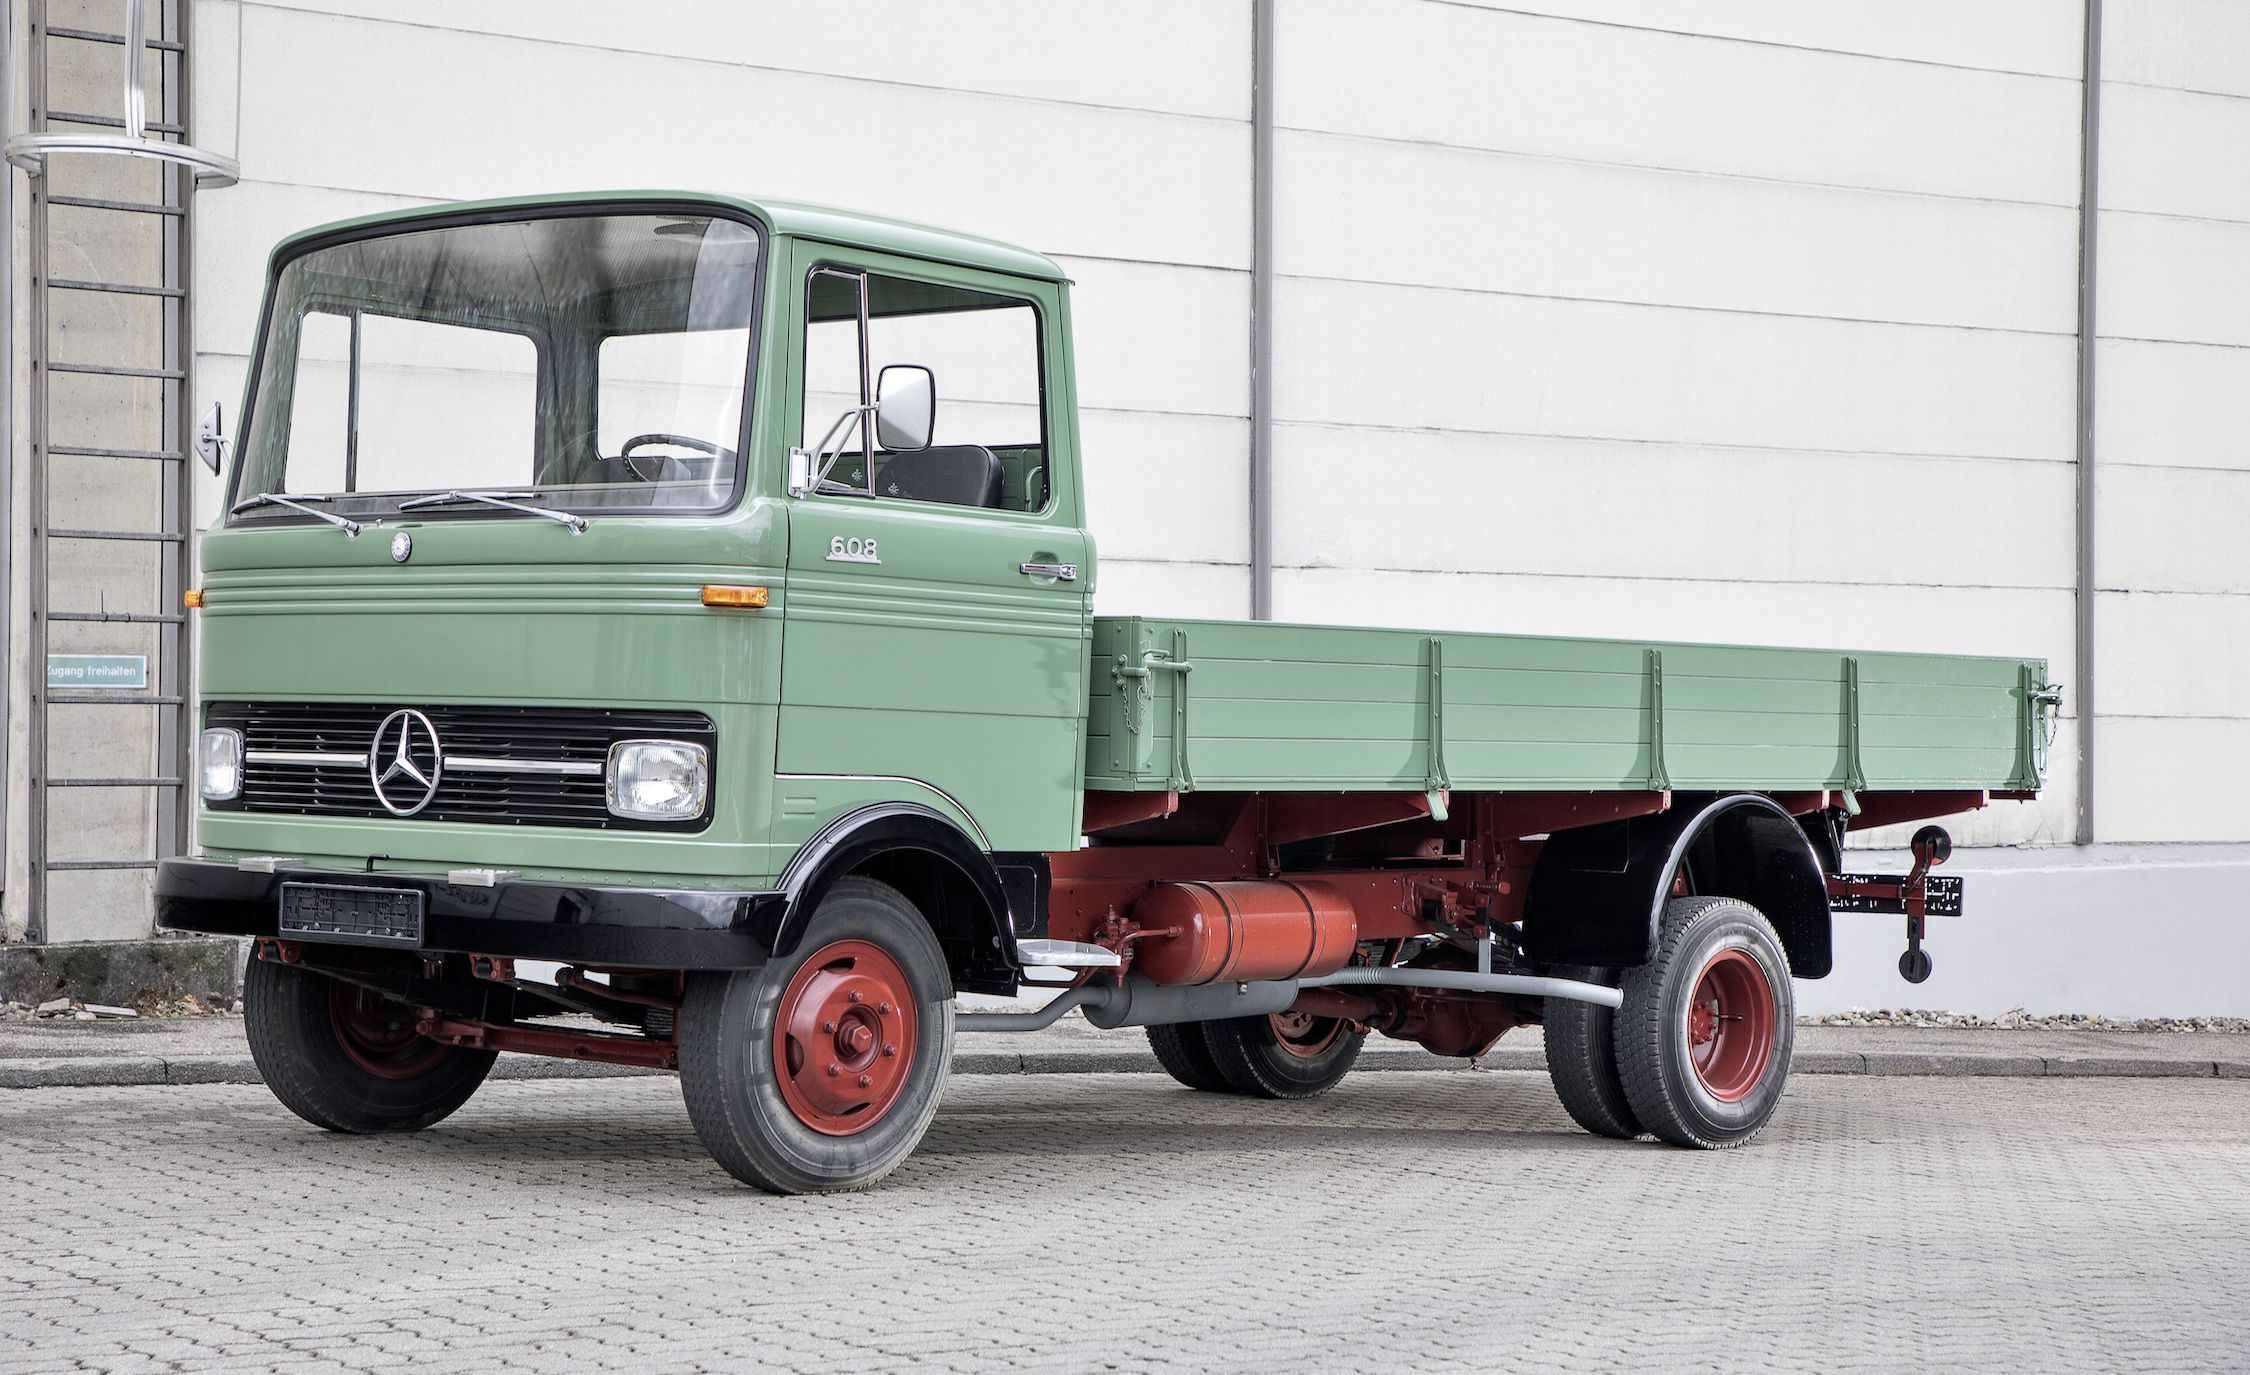 Used mercedes benz trucks for sale in germany my for Used mercedes benz trucks for sale in germany